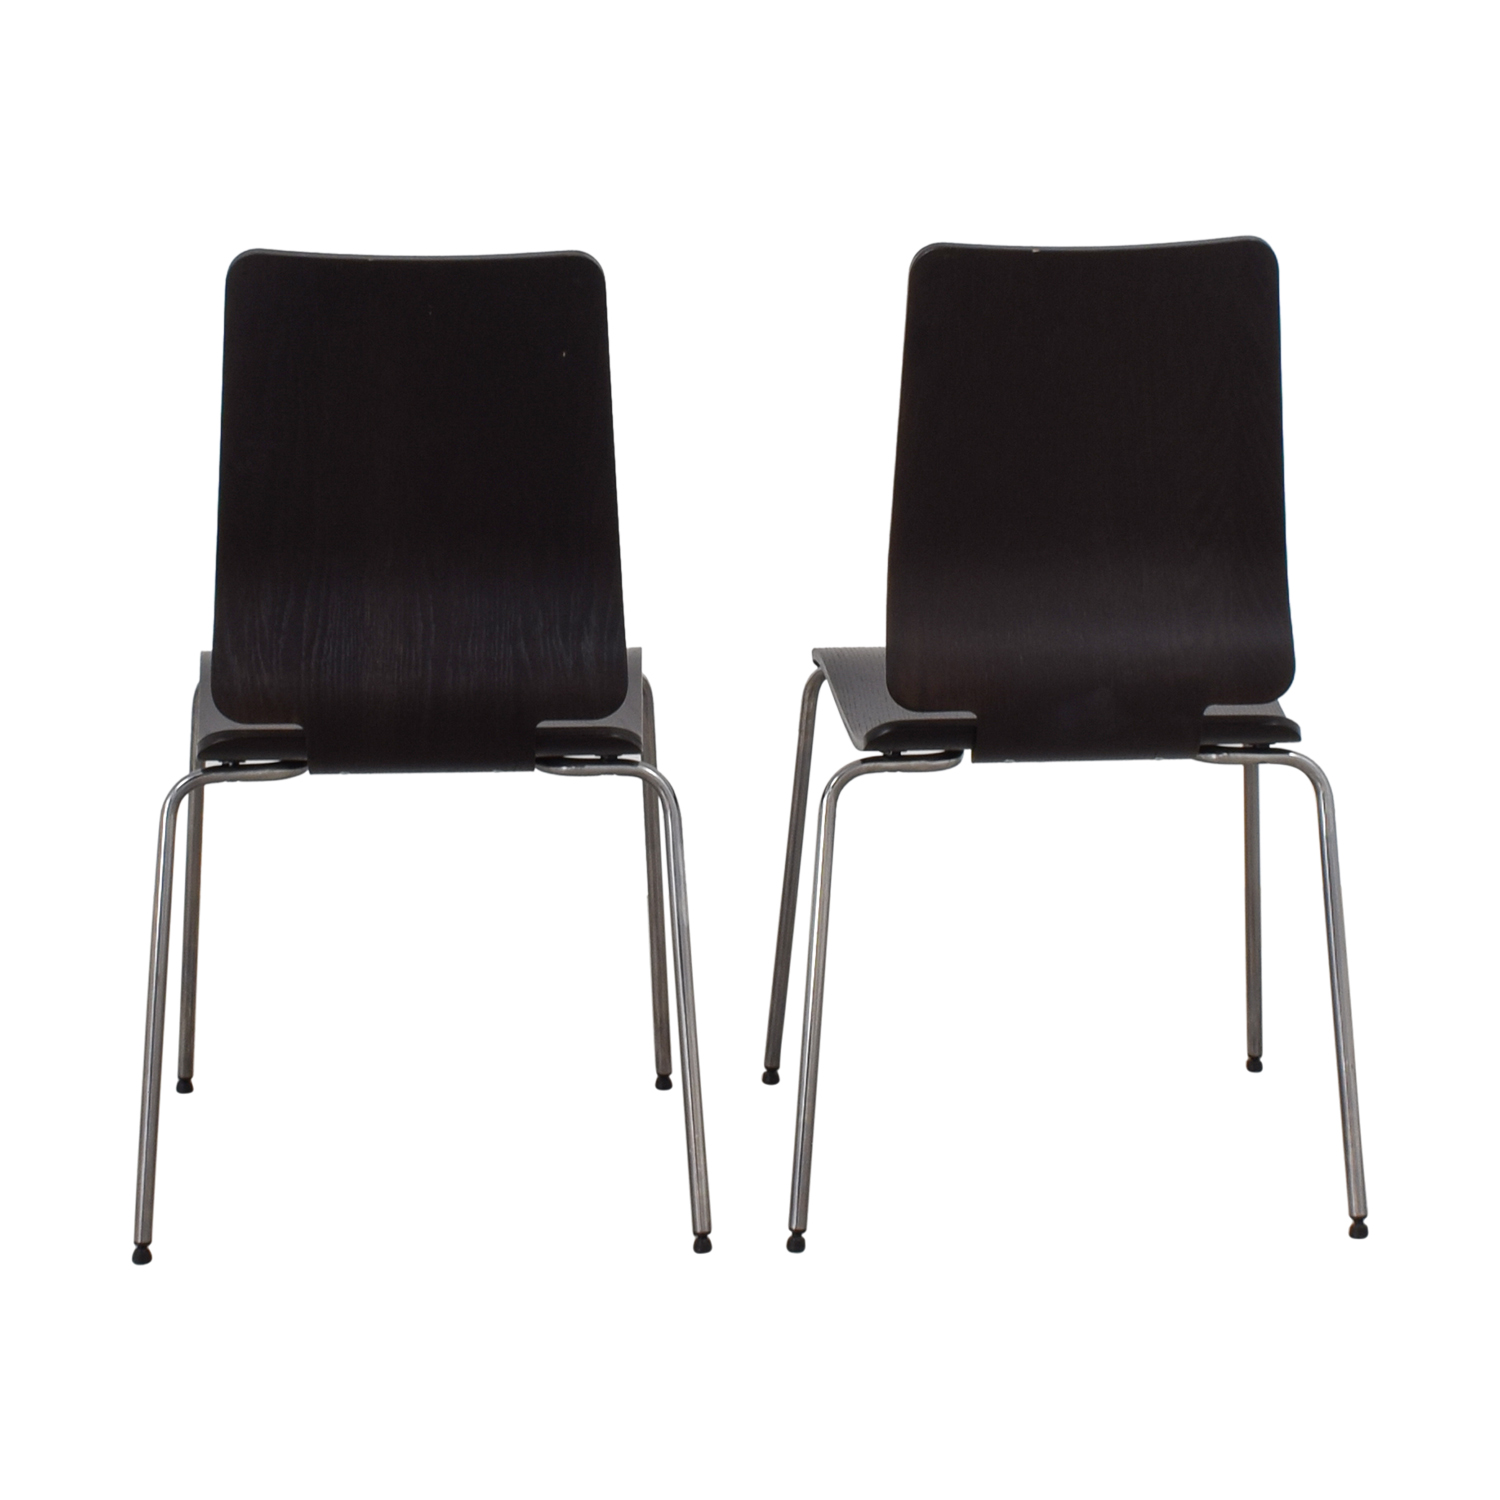 ... IKEA IKEA Black And Chrome Chairs ...